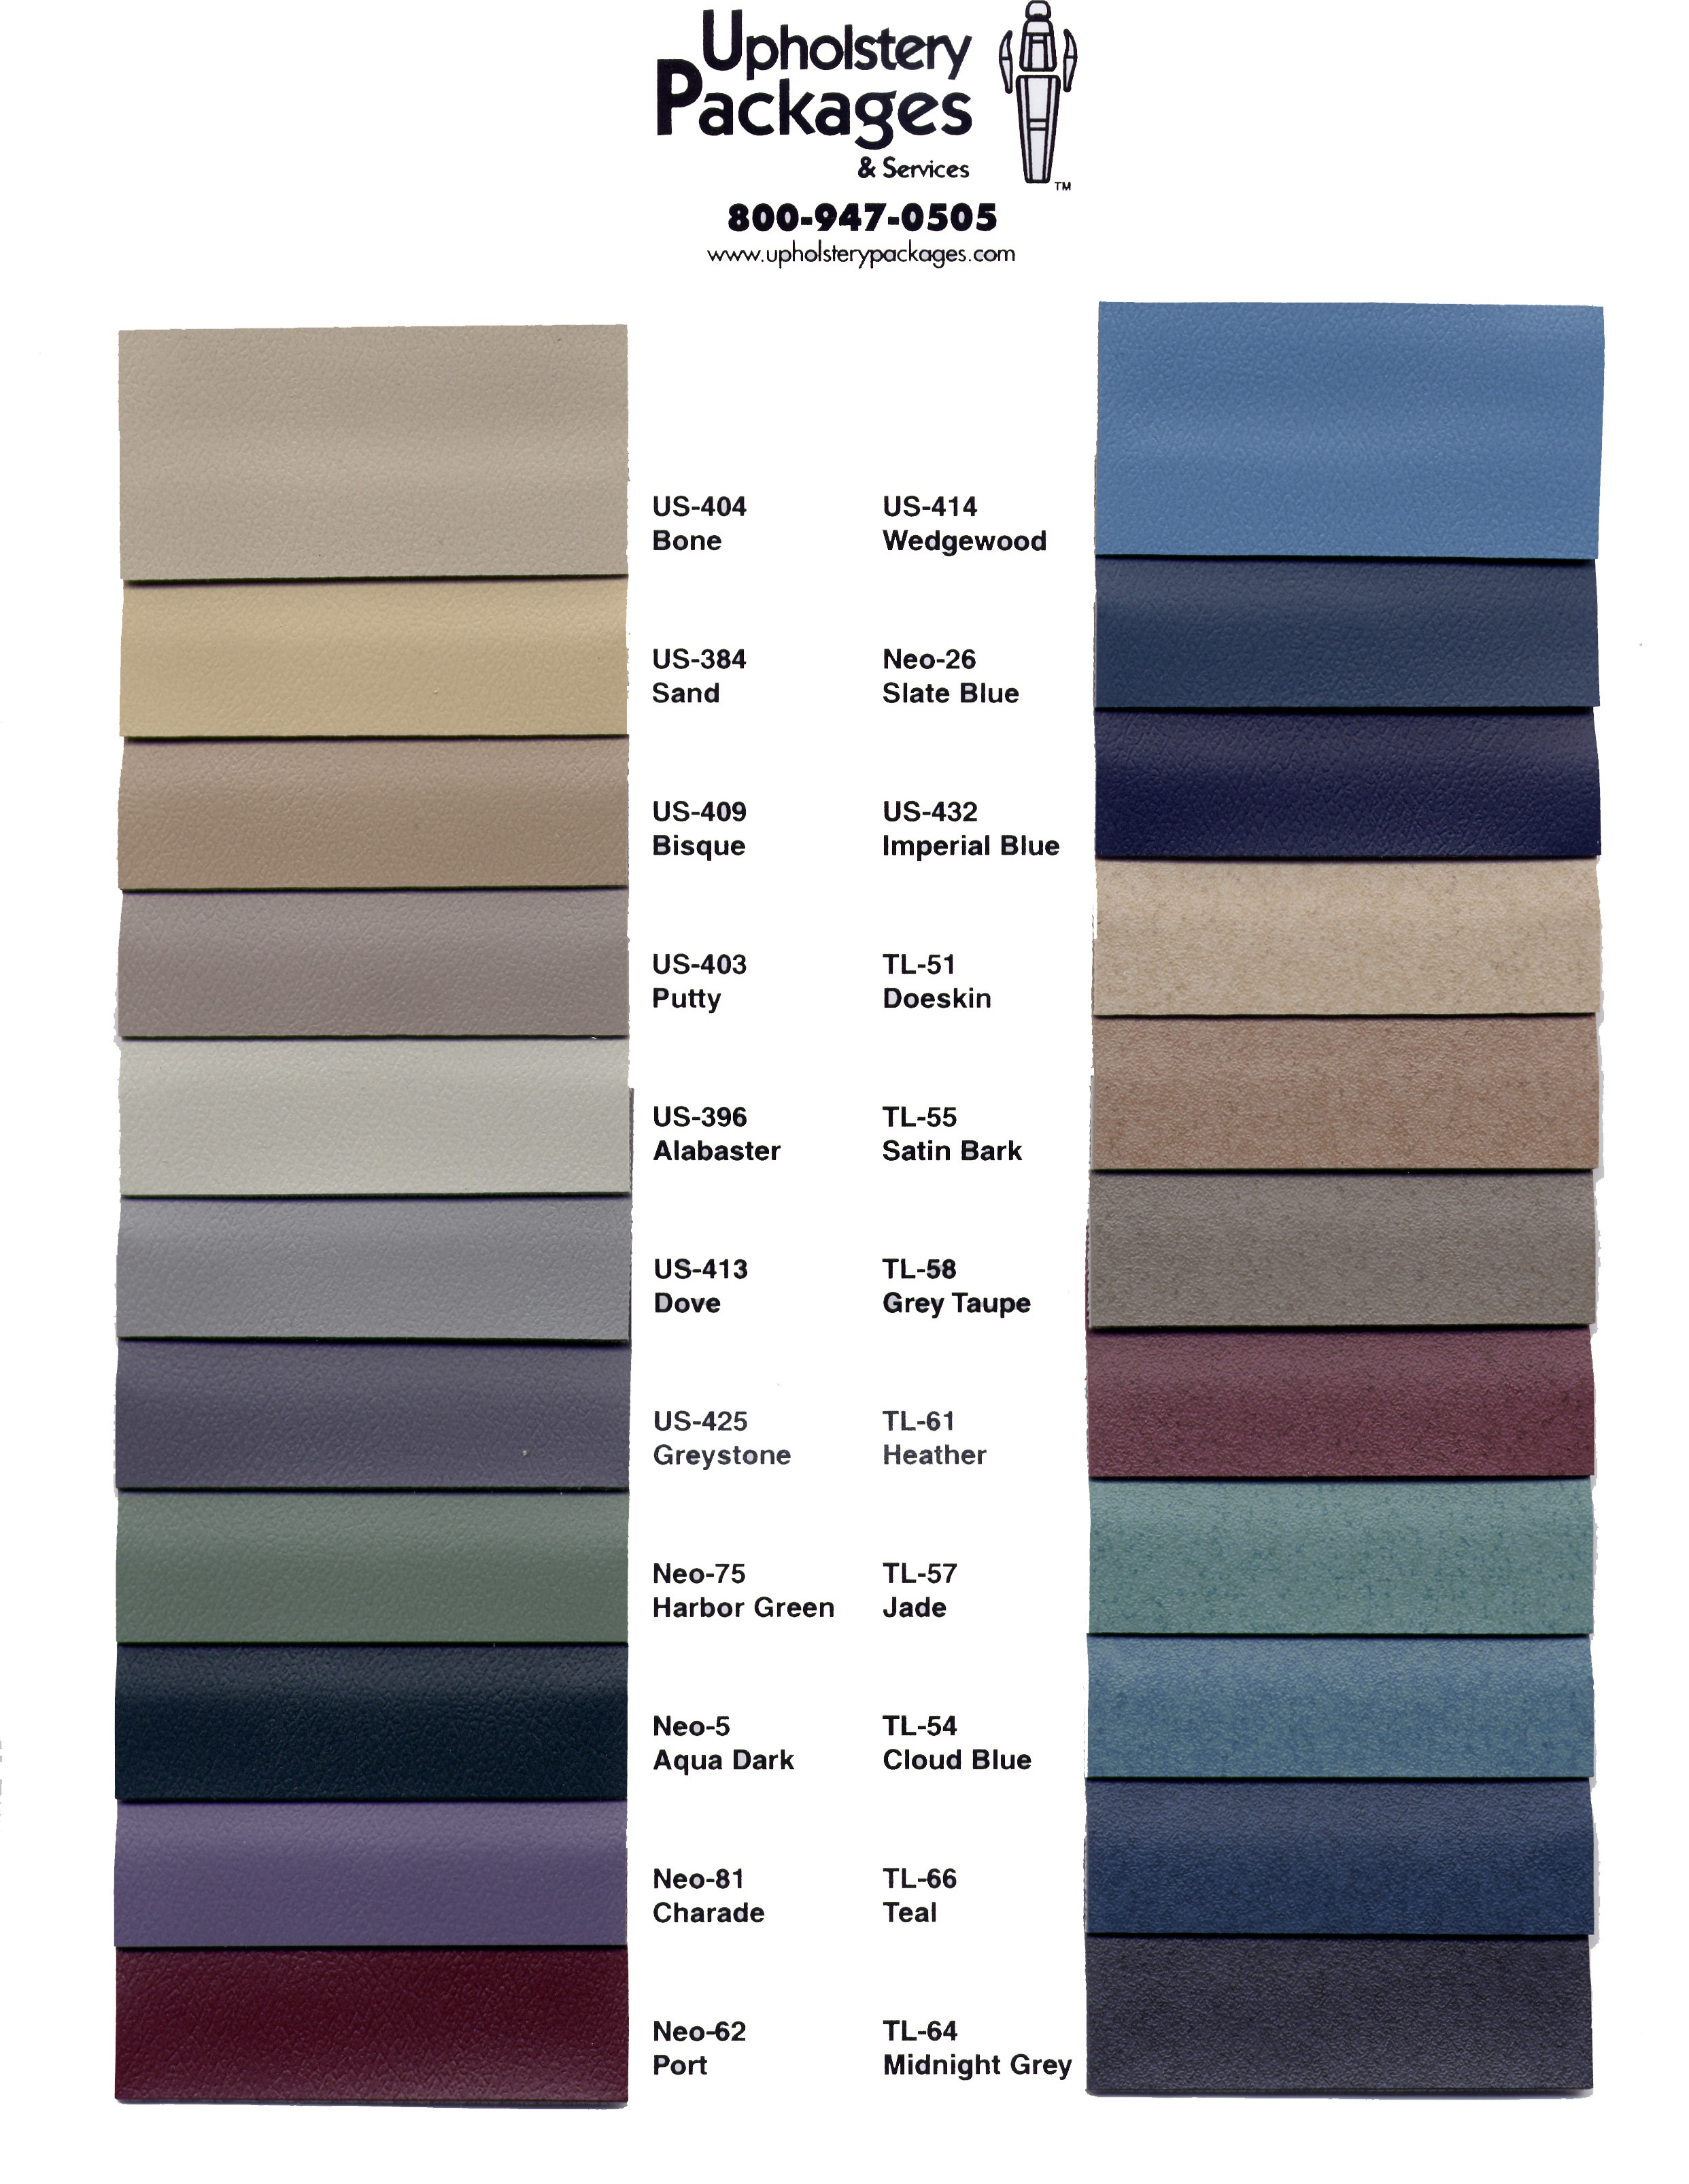 Color Charts Dental Upholstery And Stools Uph